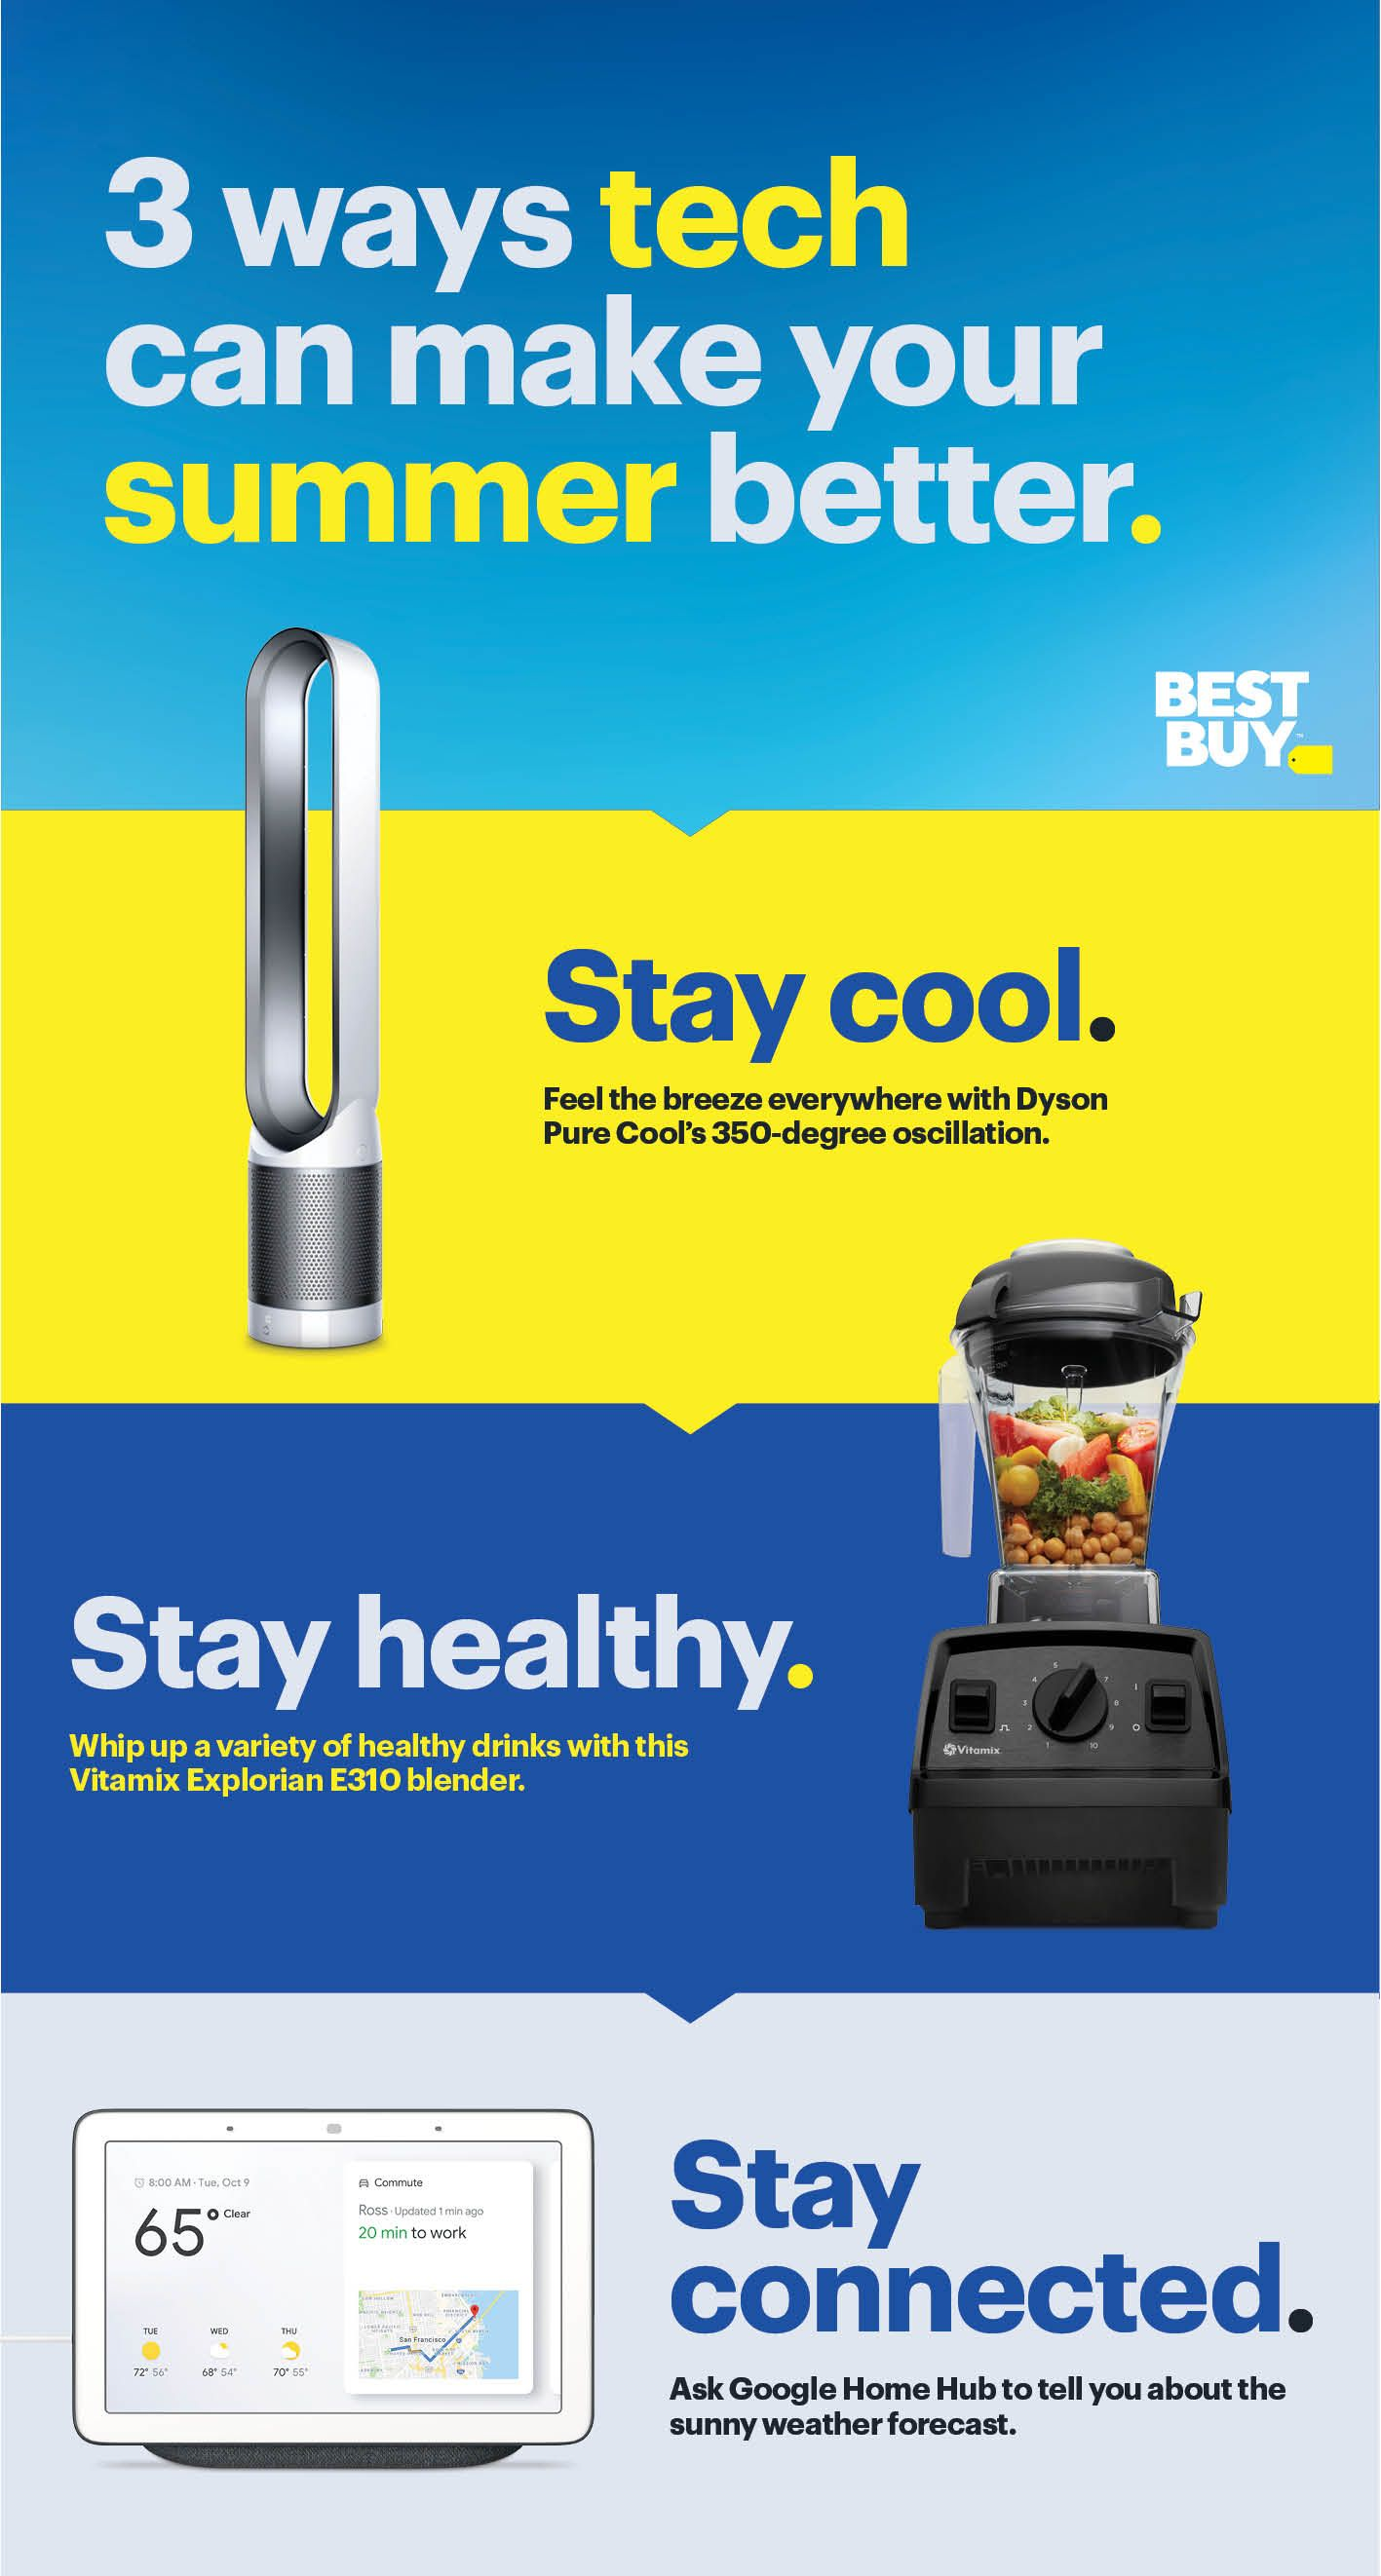 First Day Of Summer Cool Things To Buy Travel Technology How To Stay Healthy